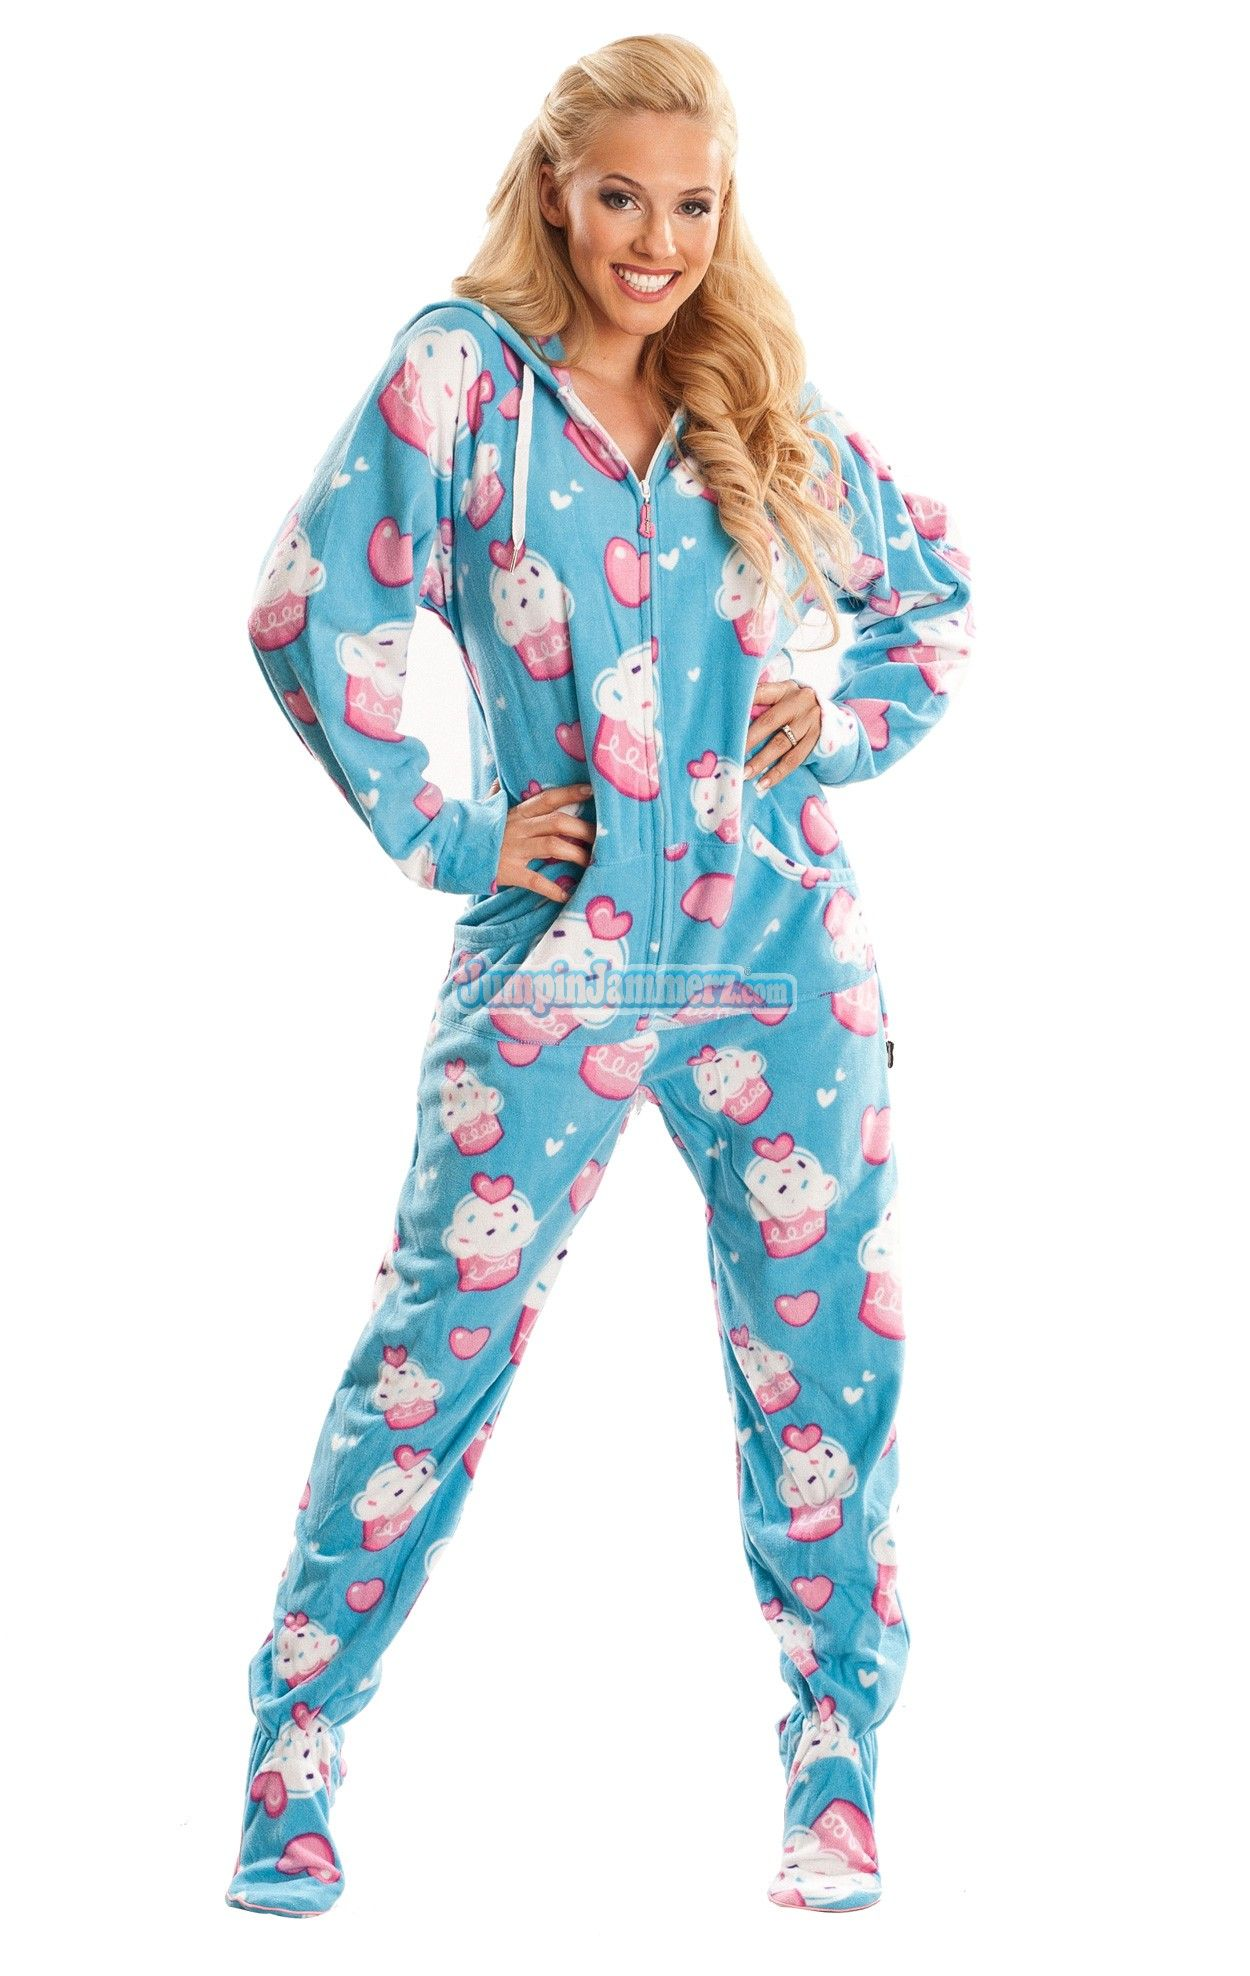 cup cakes hooded footed pajamas pajamas footie pjs. Black Bedroom Furniture Sets. Home Design Ideas